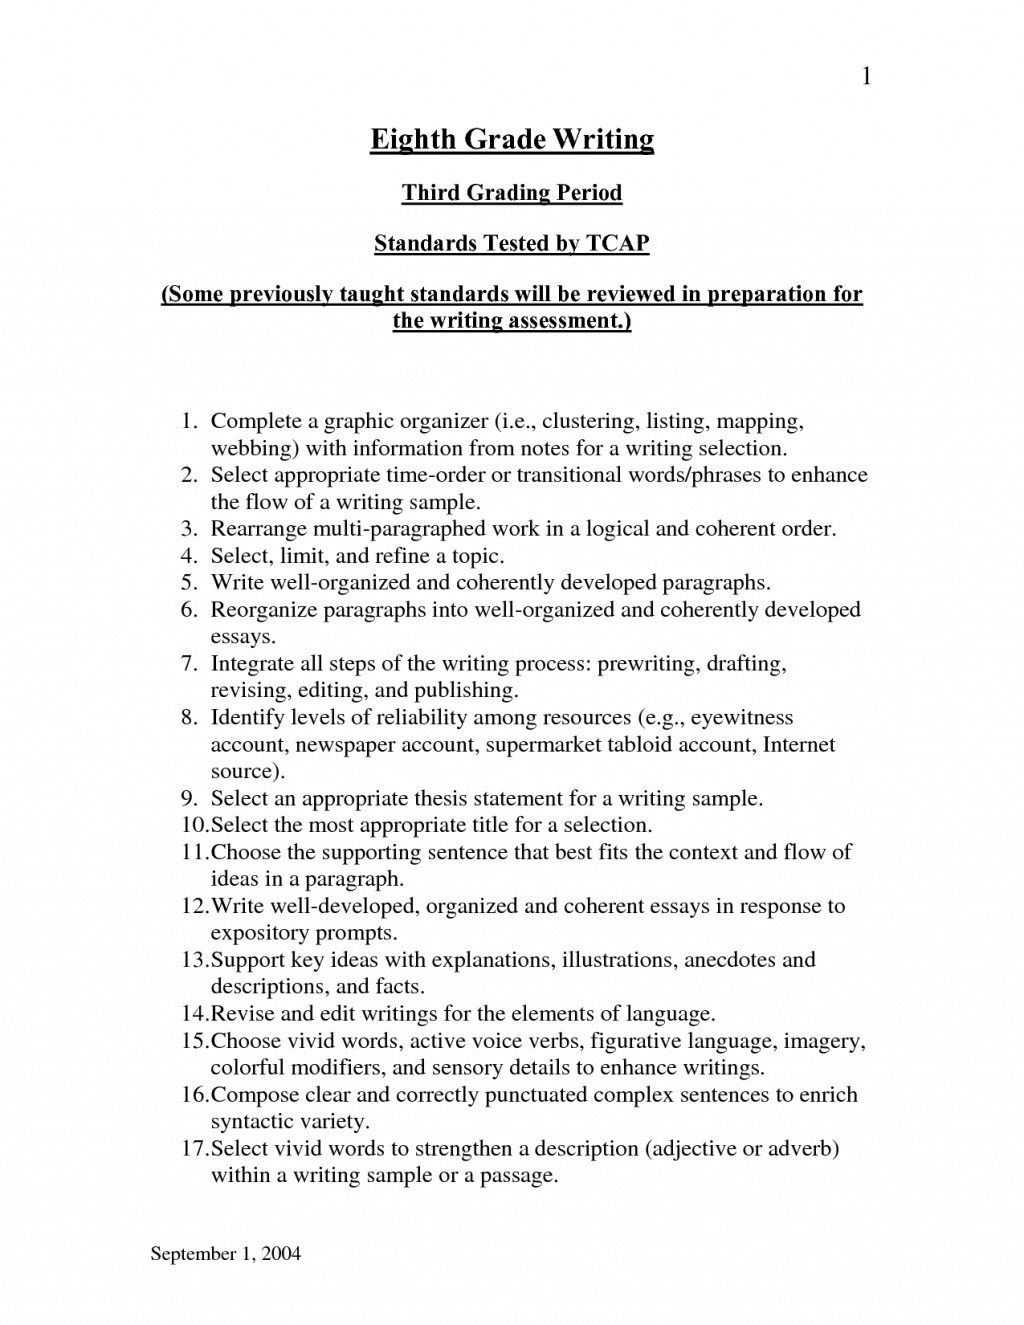 008 Expository Essays 1341145155 Essay Help Stunning Just The Facts Topics Rubric 4th Grade Large